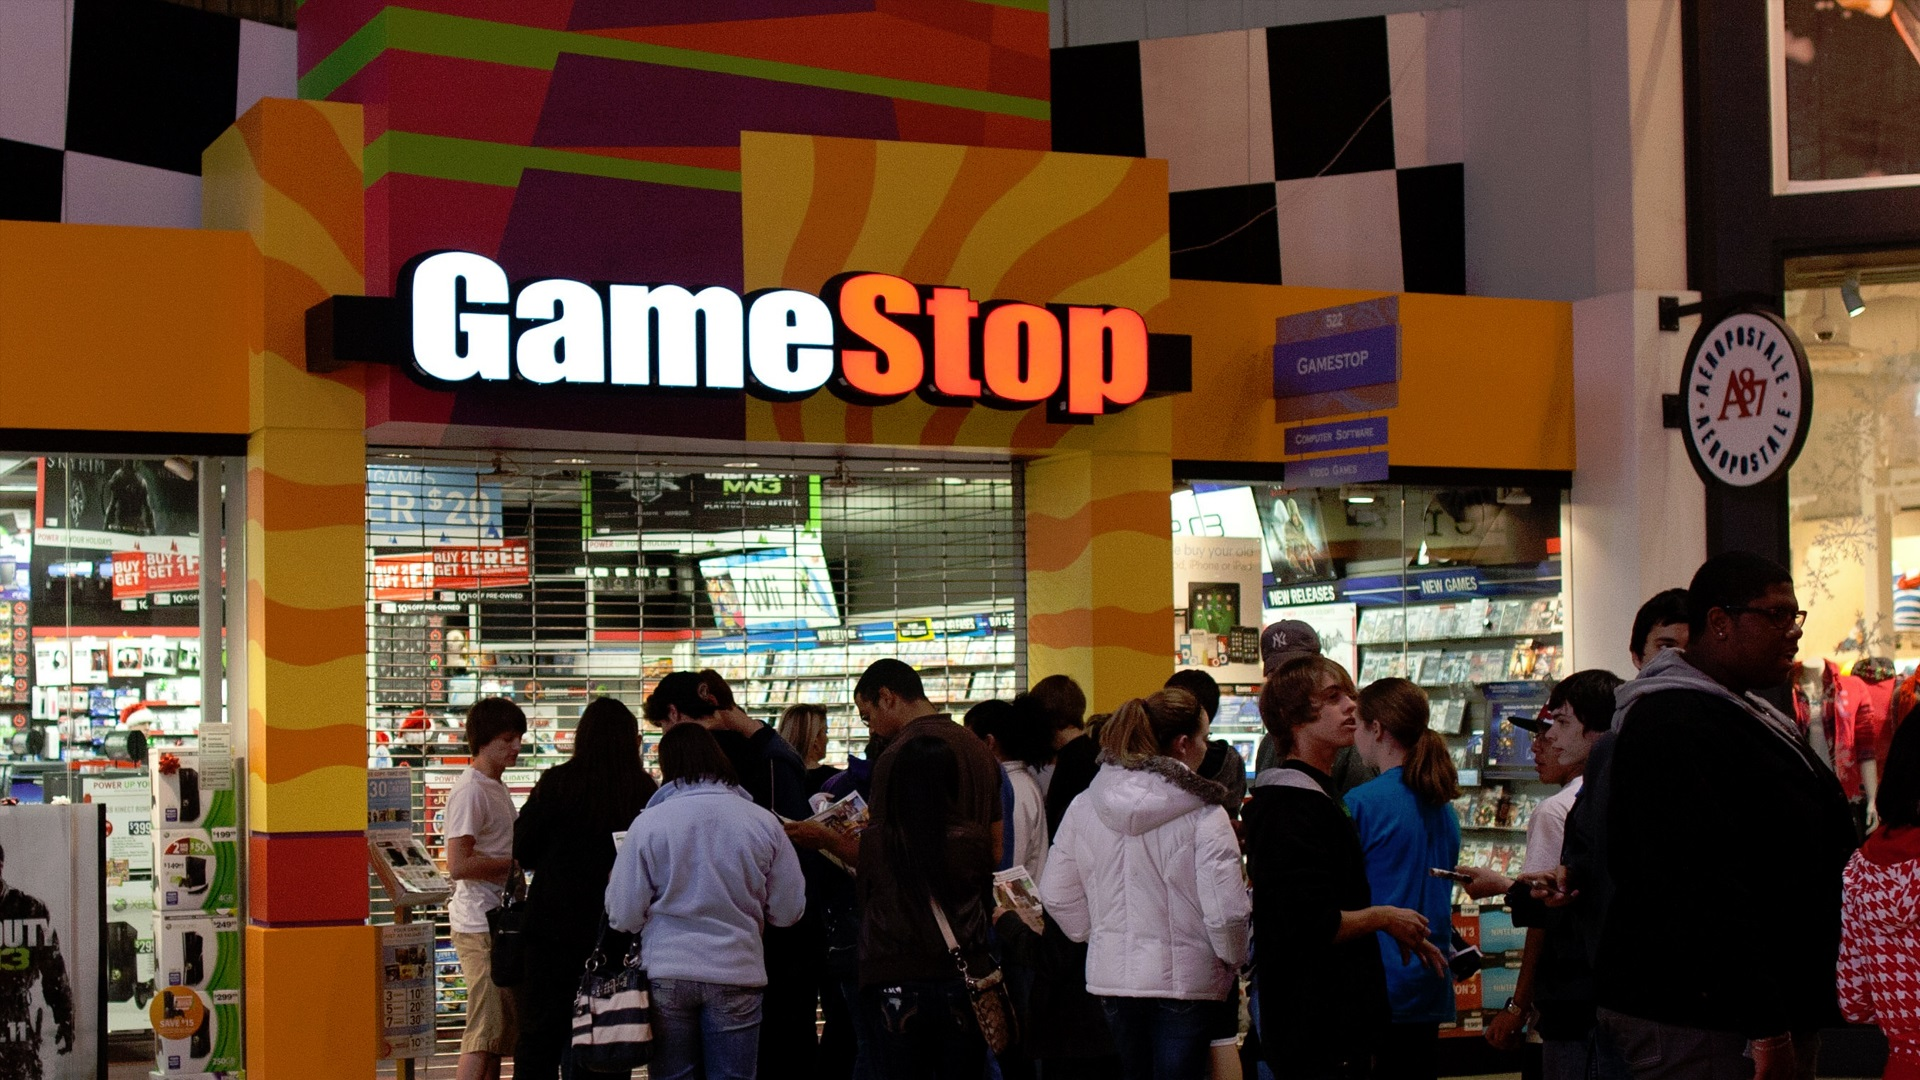 We Joke, but the State of GameStop's Business Isn't Funny